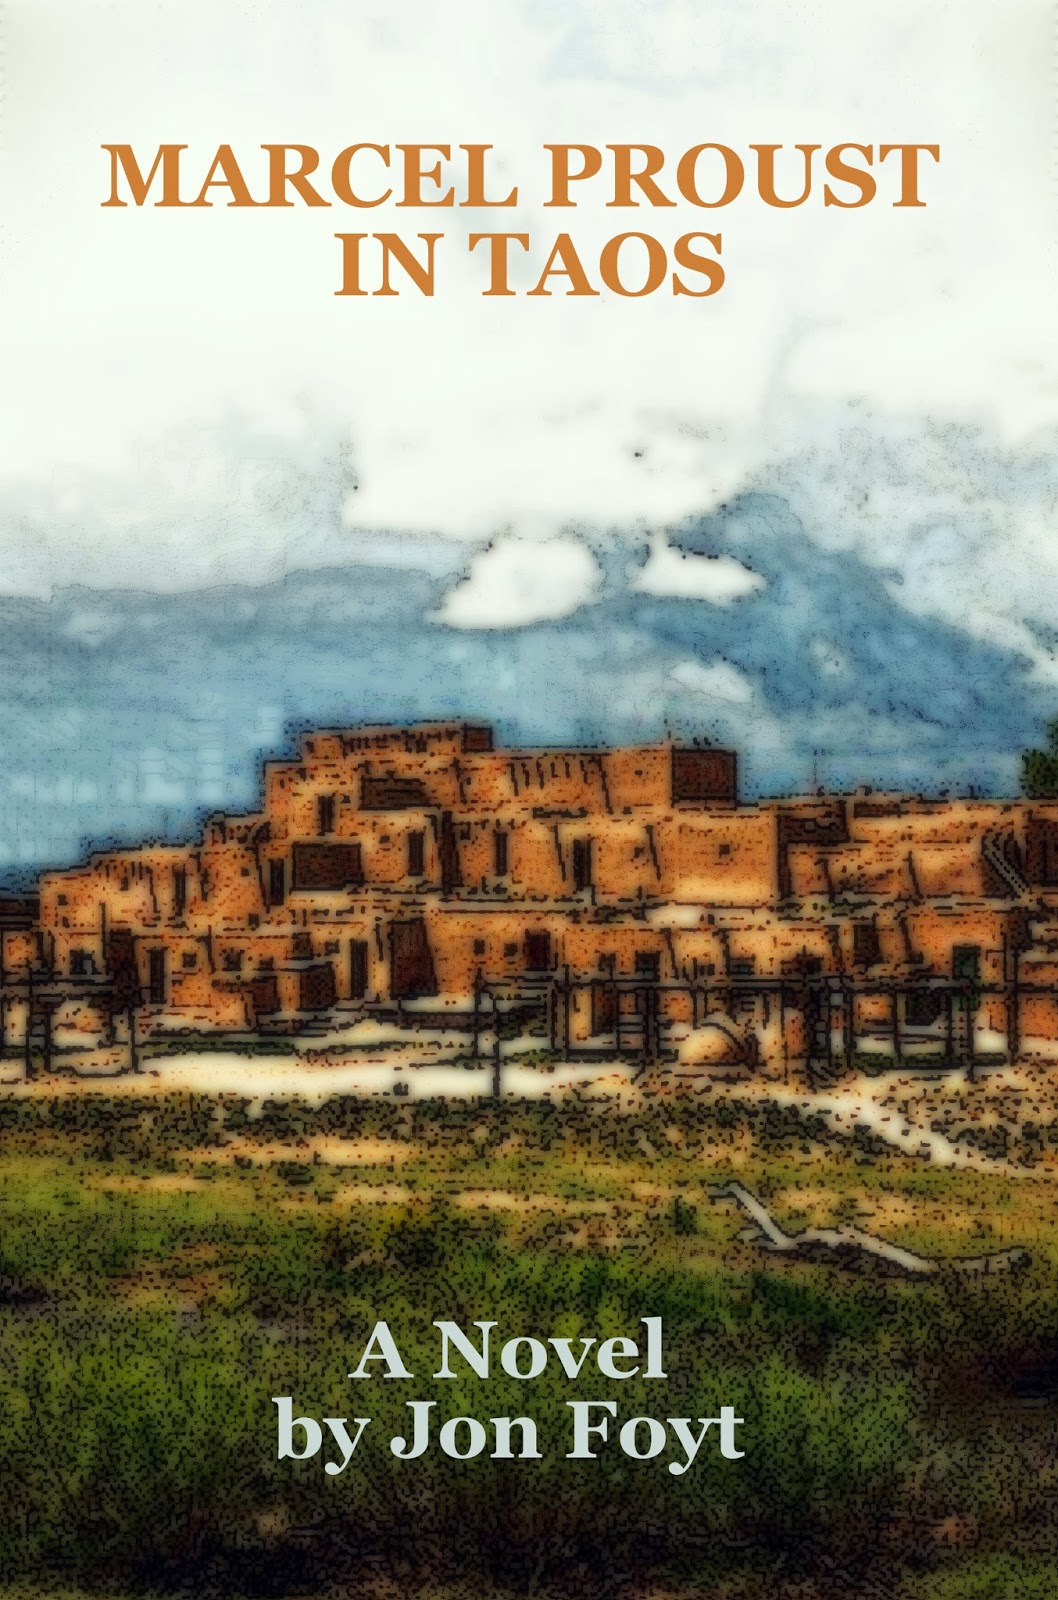 WW Giveaway: Marcel Proust in Taos